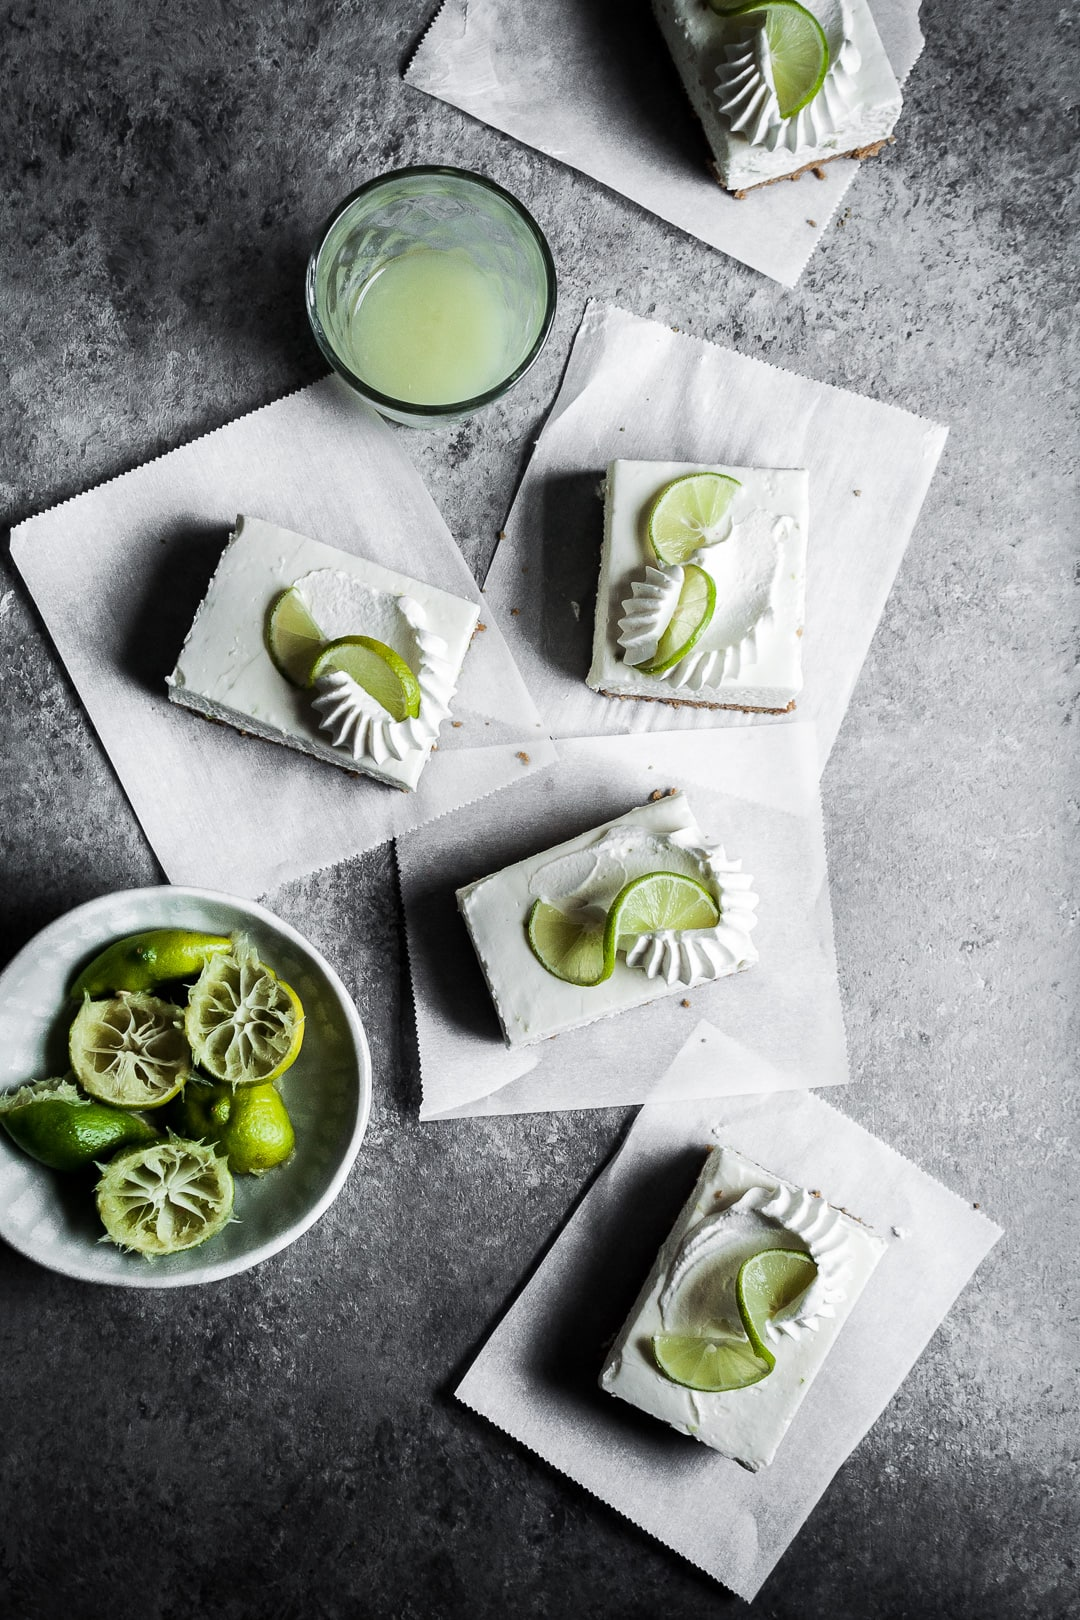 Key Lime cheesecake bar slices with piped whipped cream and lime twists on squares of parchment paper on a grey background